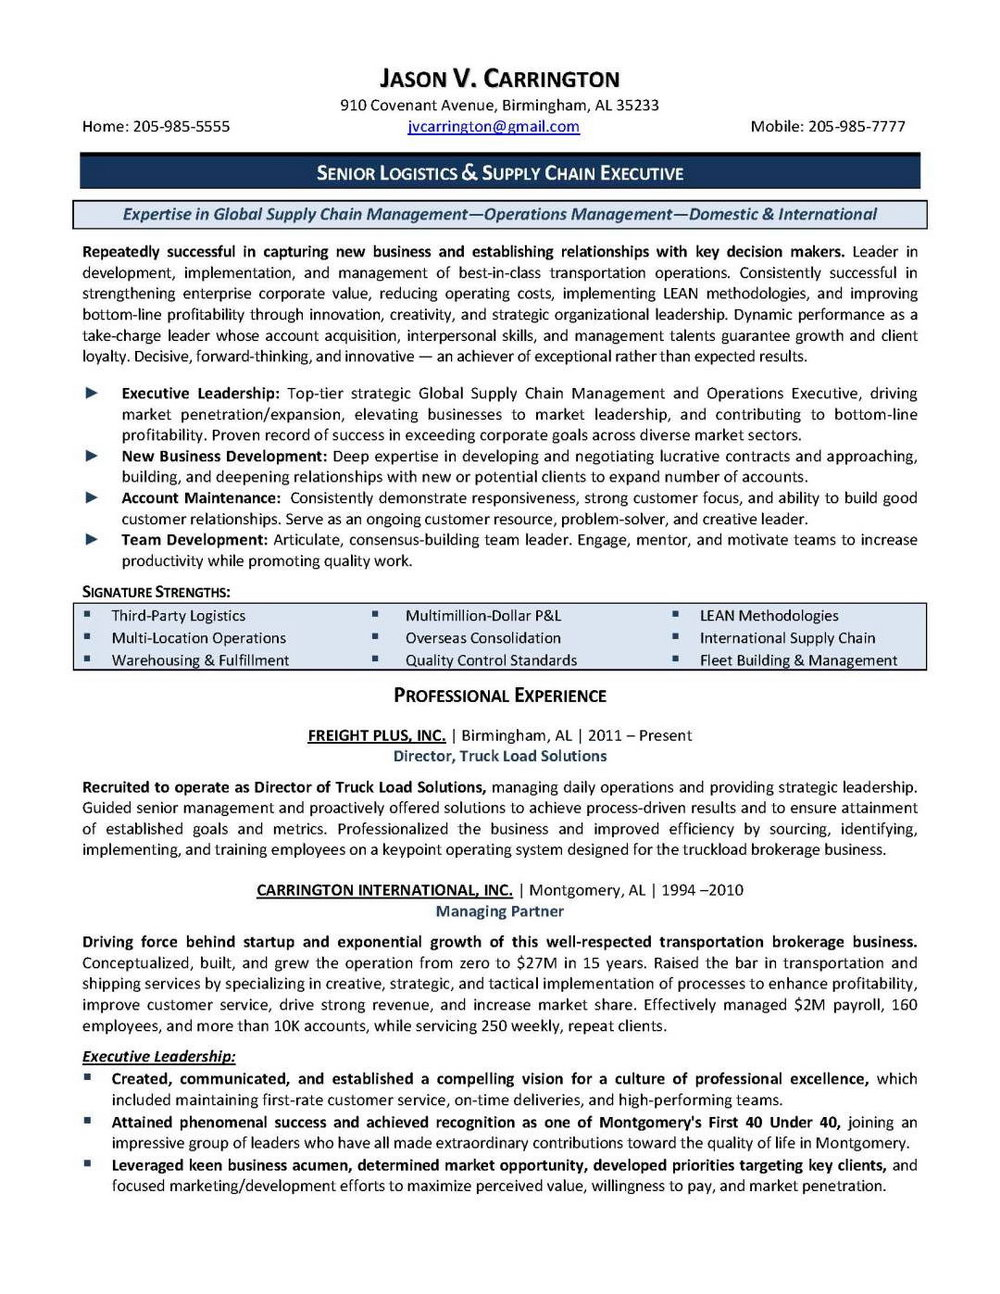 Senior Executive Service Resume Template